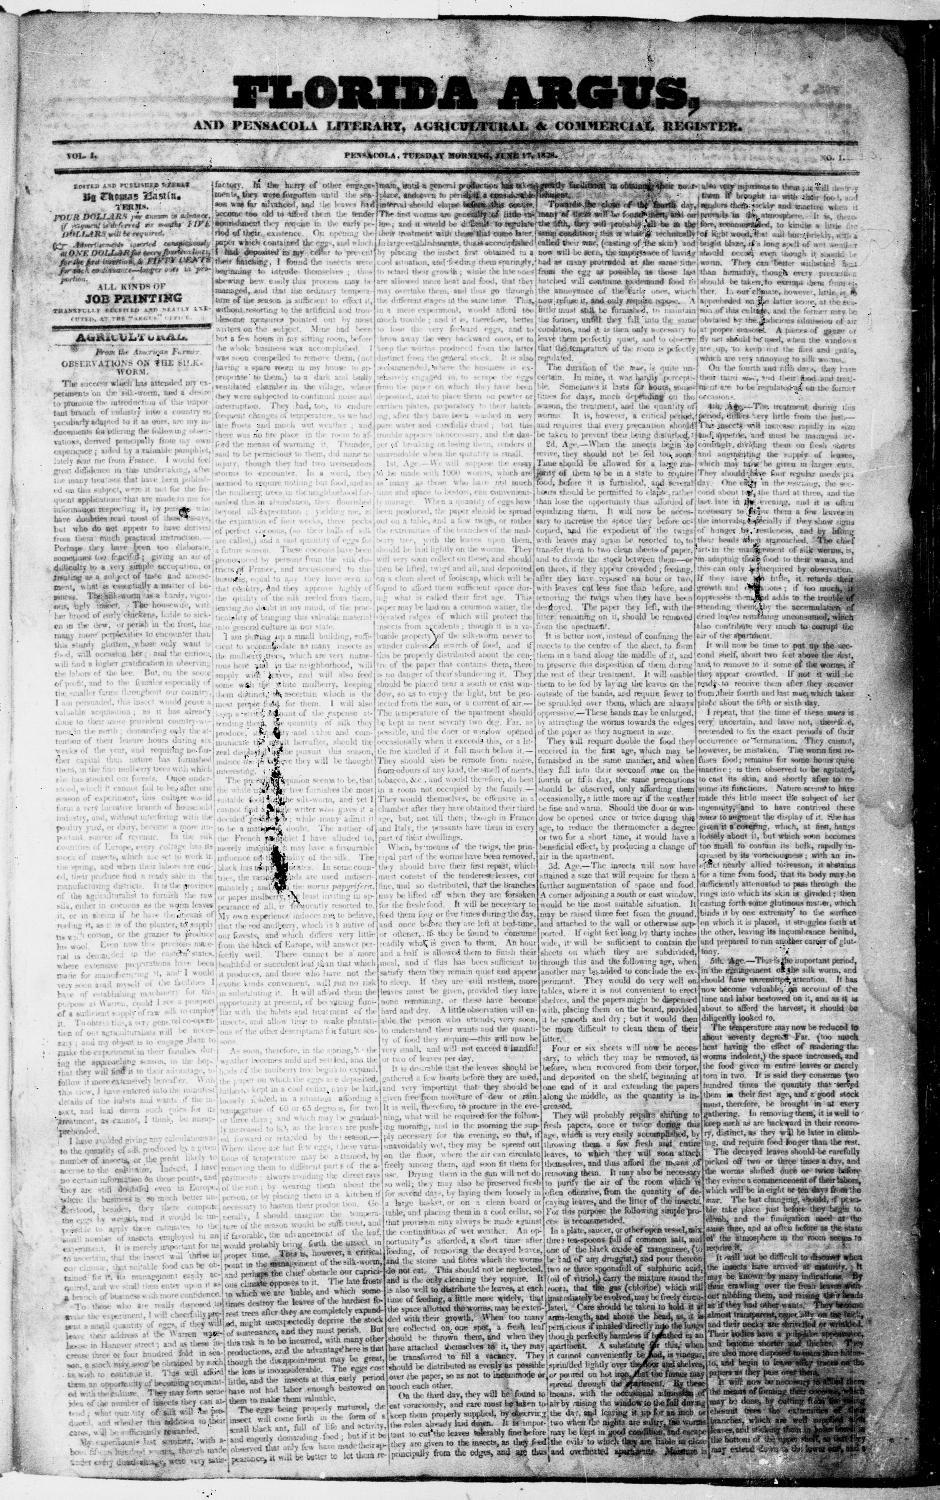 Florida Argus, and Pensacola literary, agricultural & commercial register - Page 1